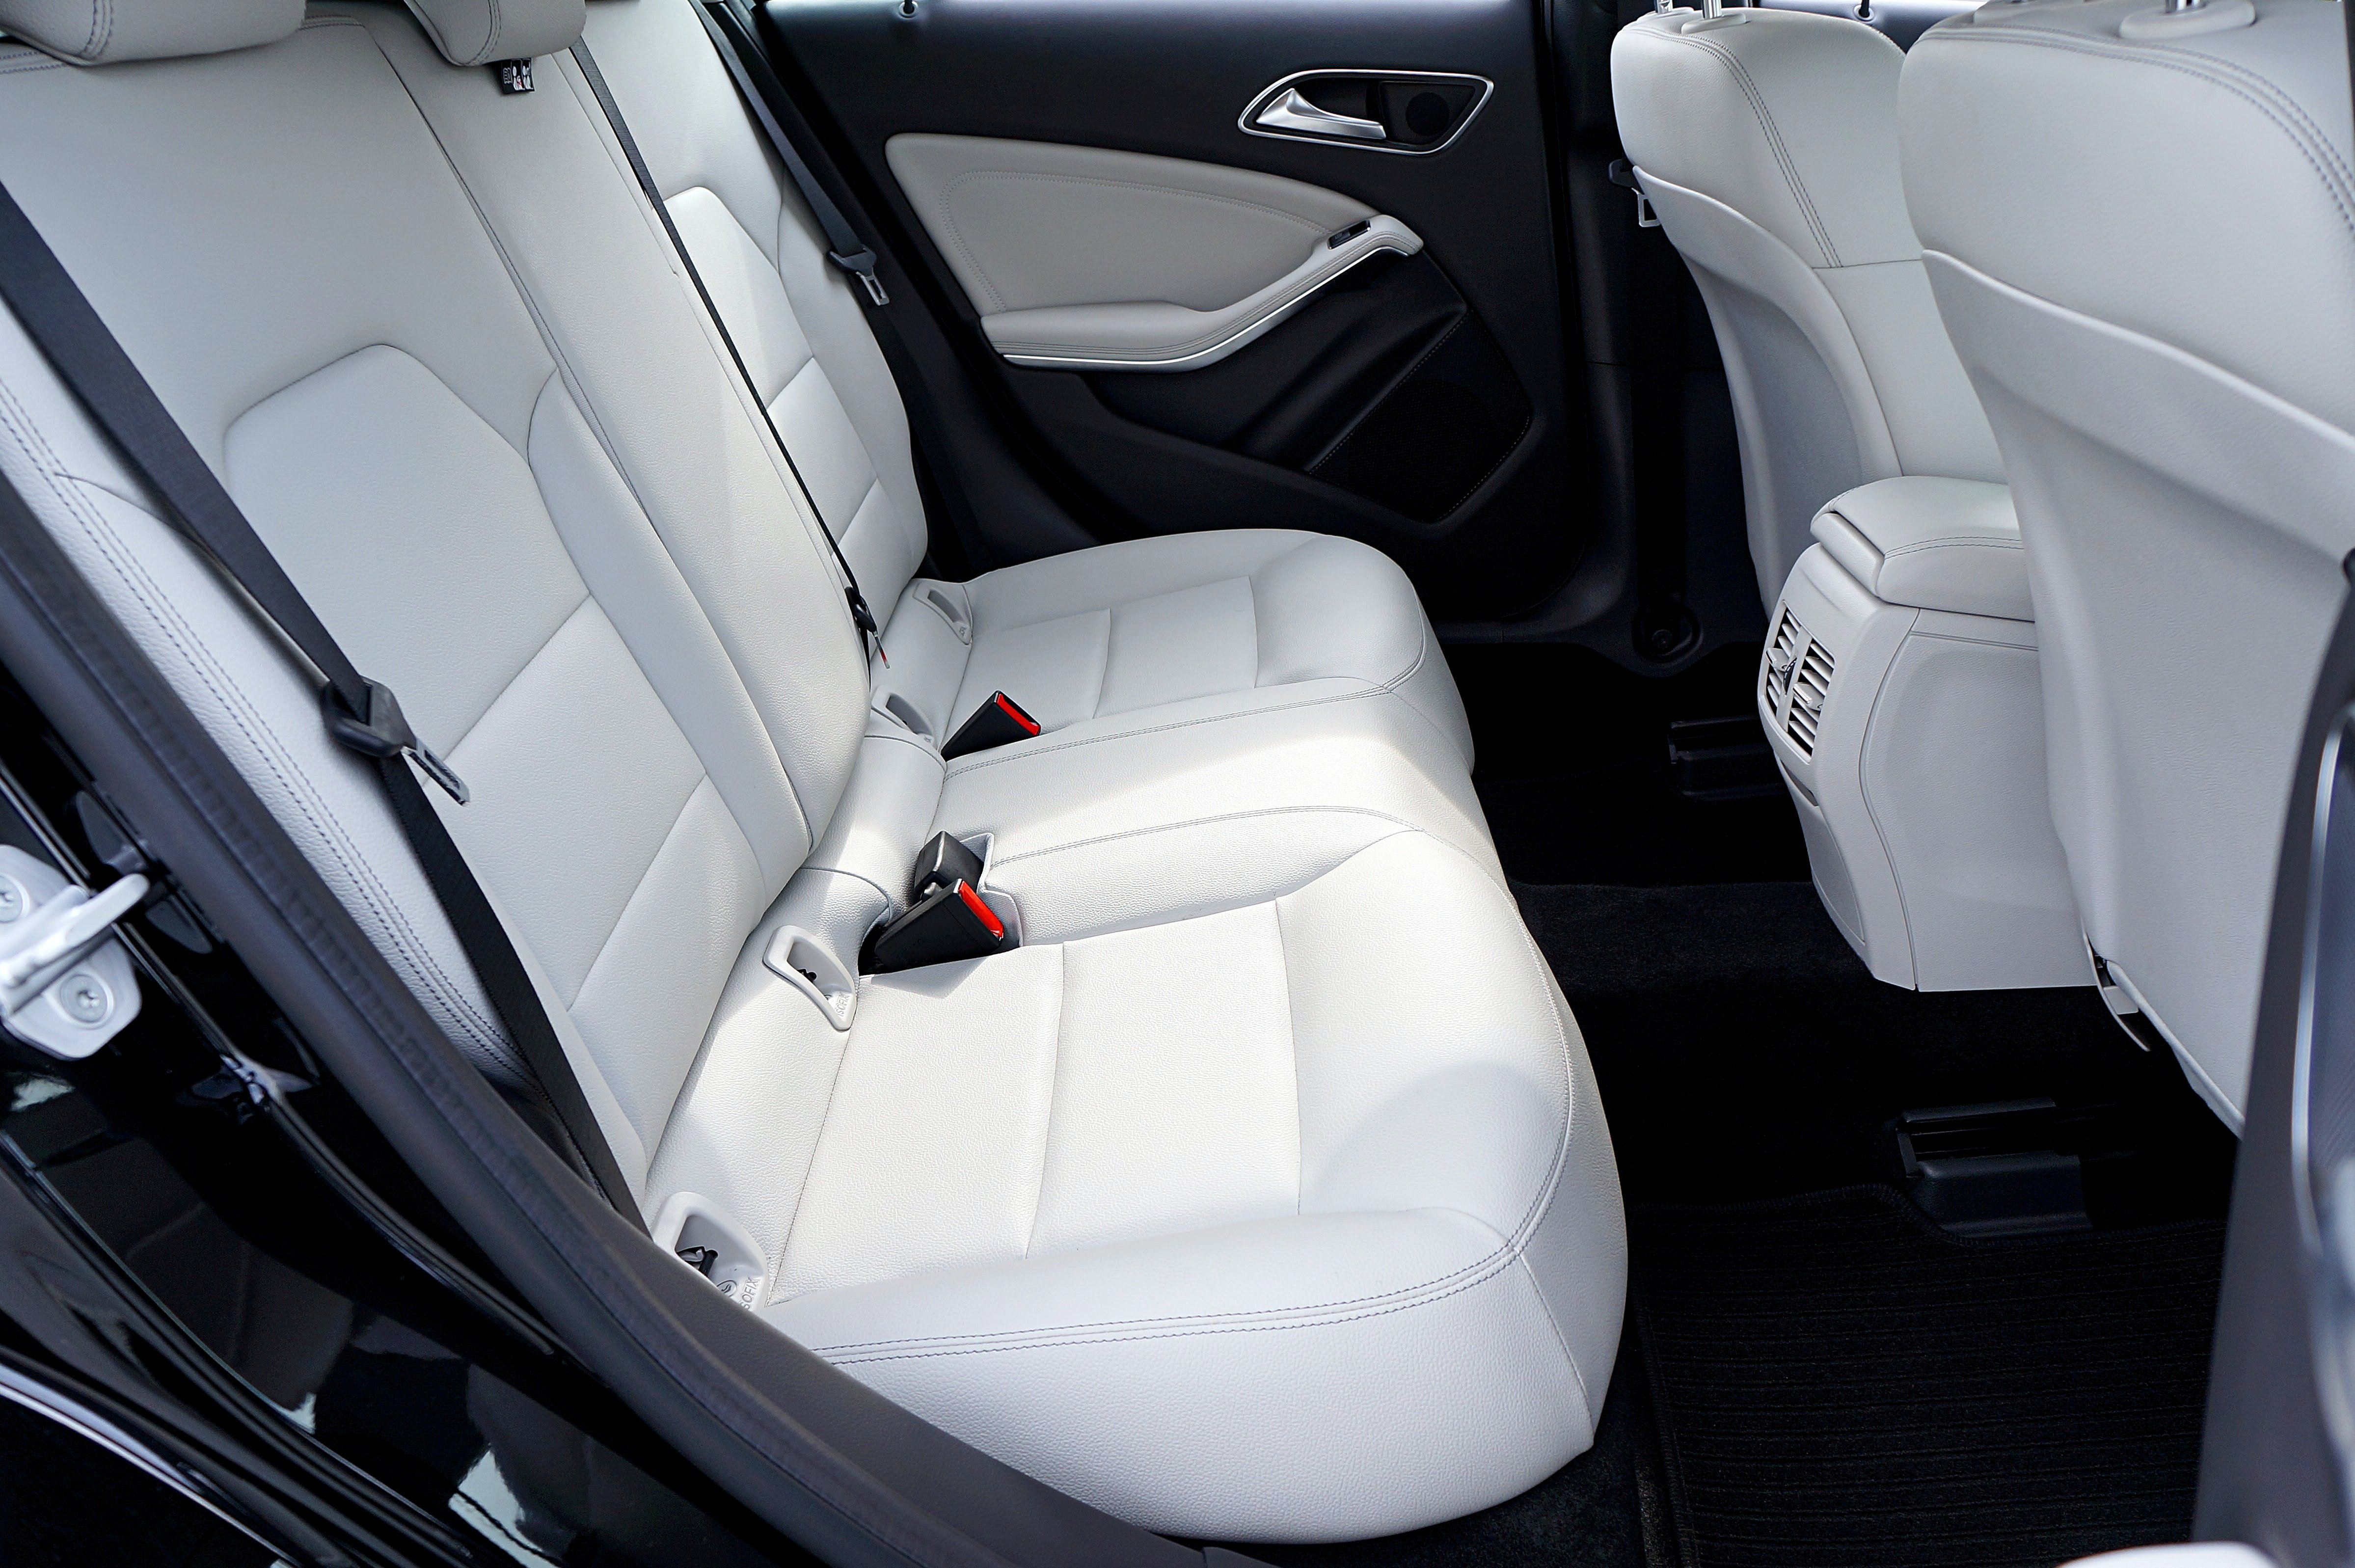 Pictured - An empty vehicle seat   Source: Pexels